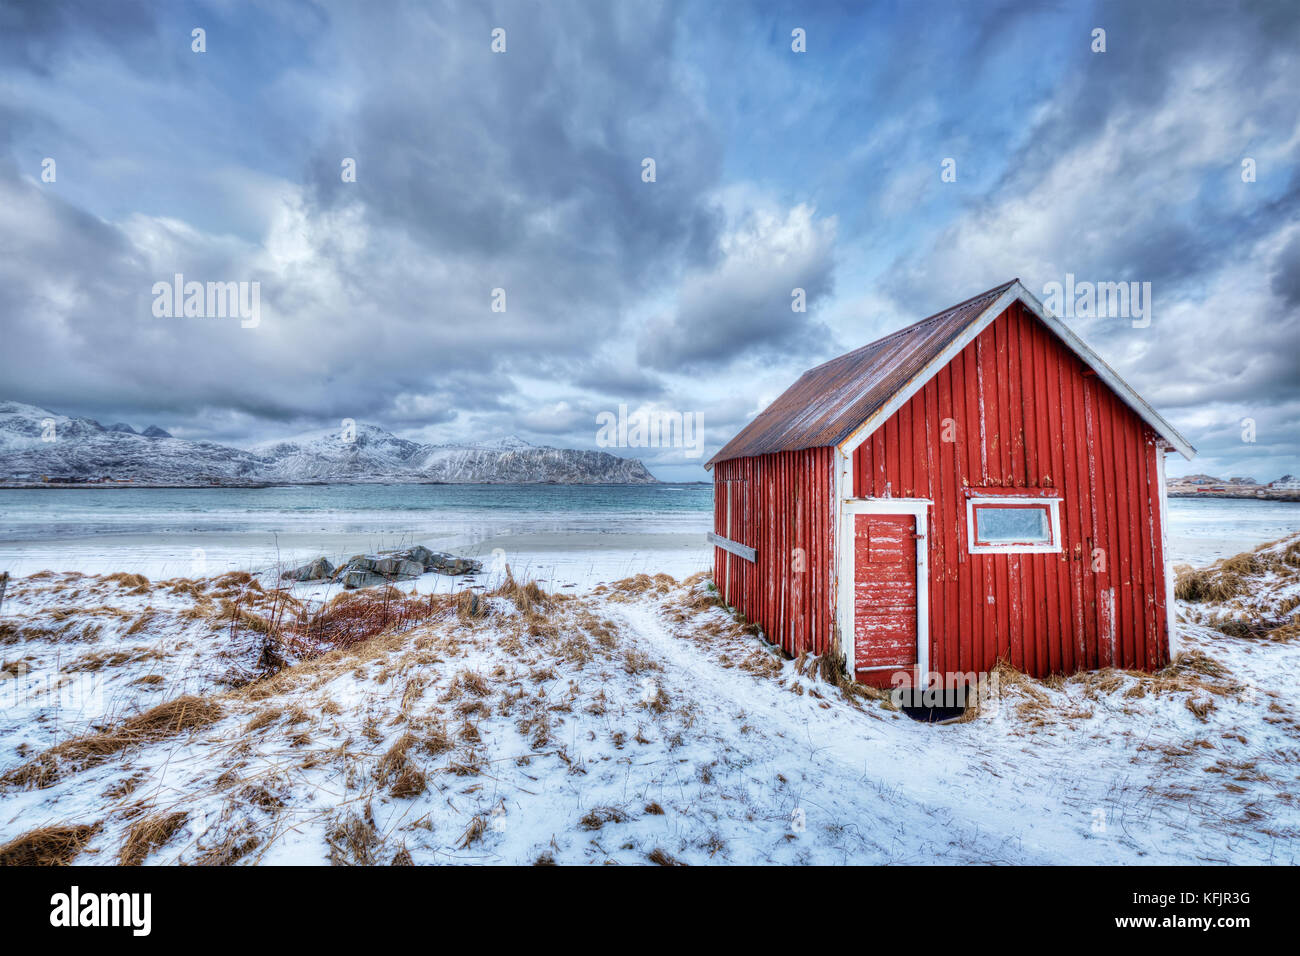 Red rorbu house shed on beach of fjord, Norway - Stock Image